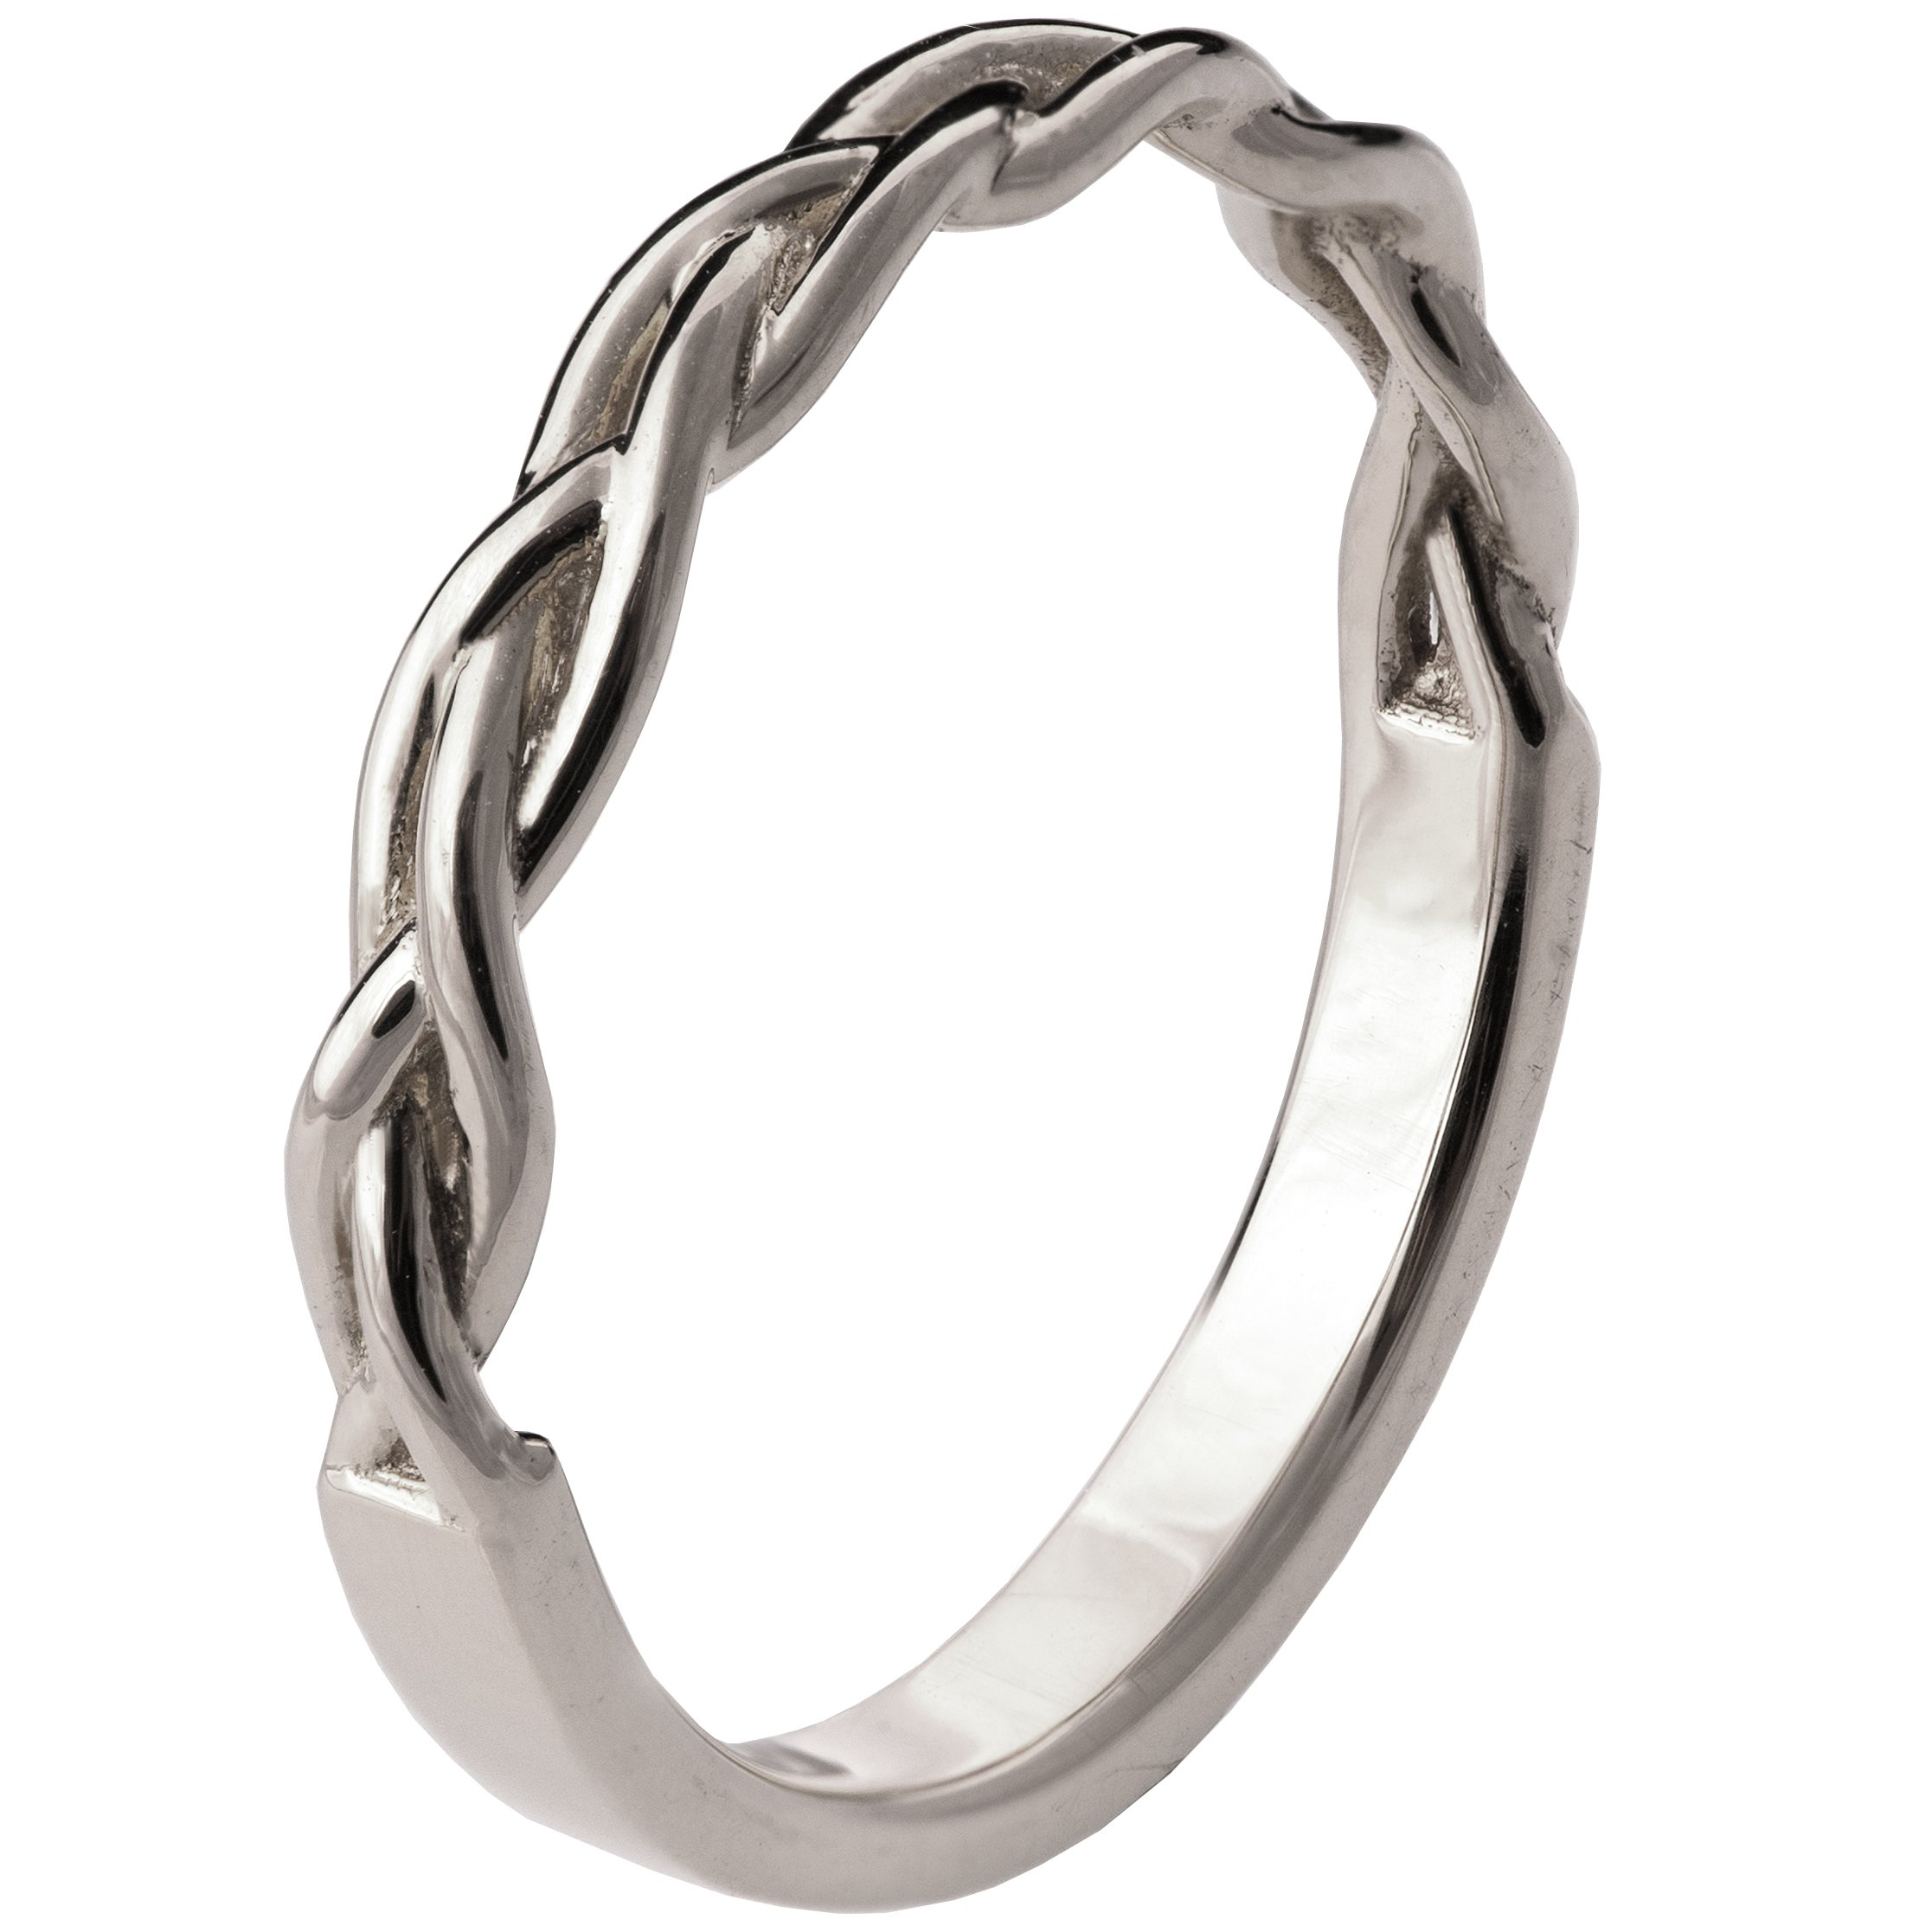 Solid 18K White Gold Braided wedding Delicate Ring For Women His and Hers Stackable Band Sets Stackable Band Celtic Woven